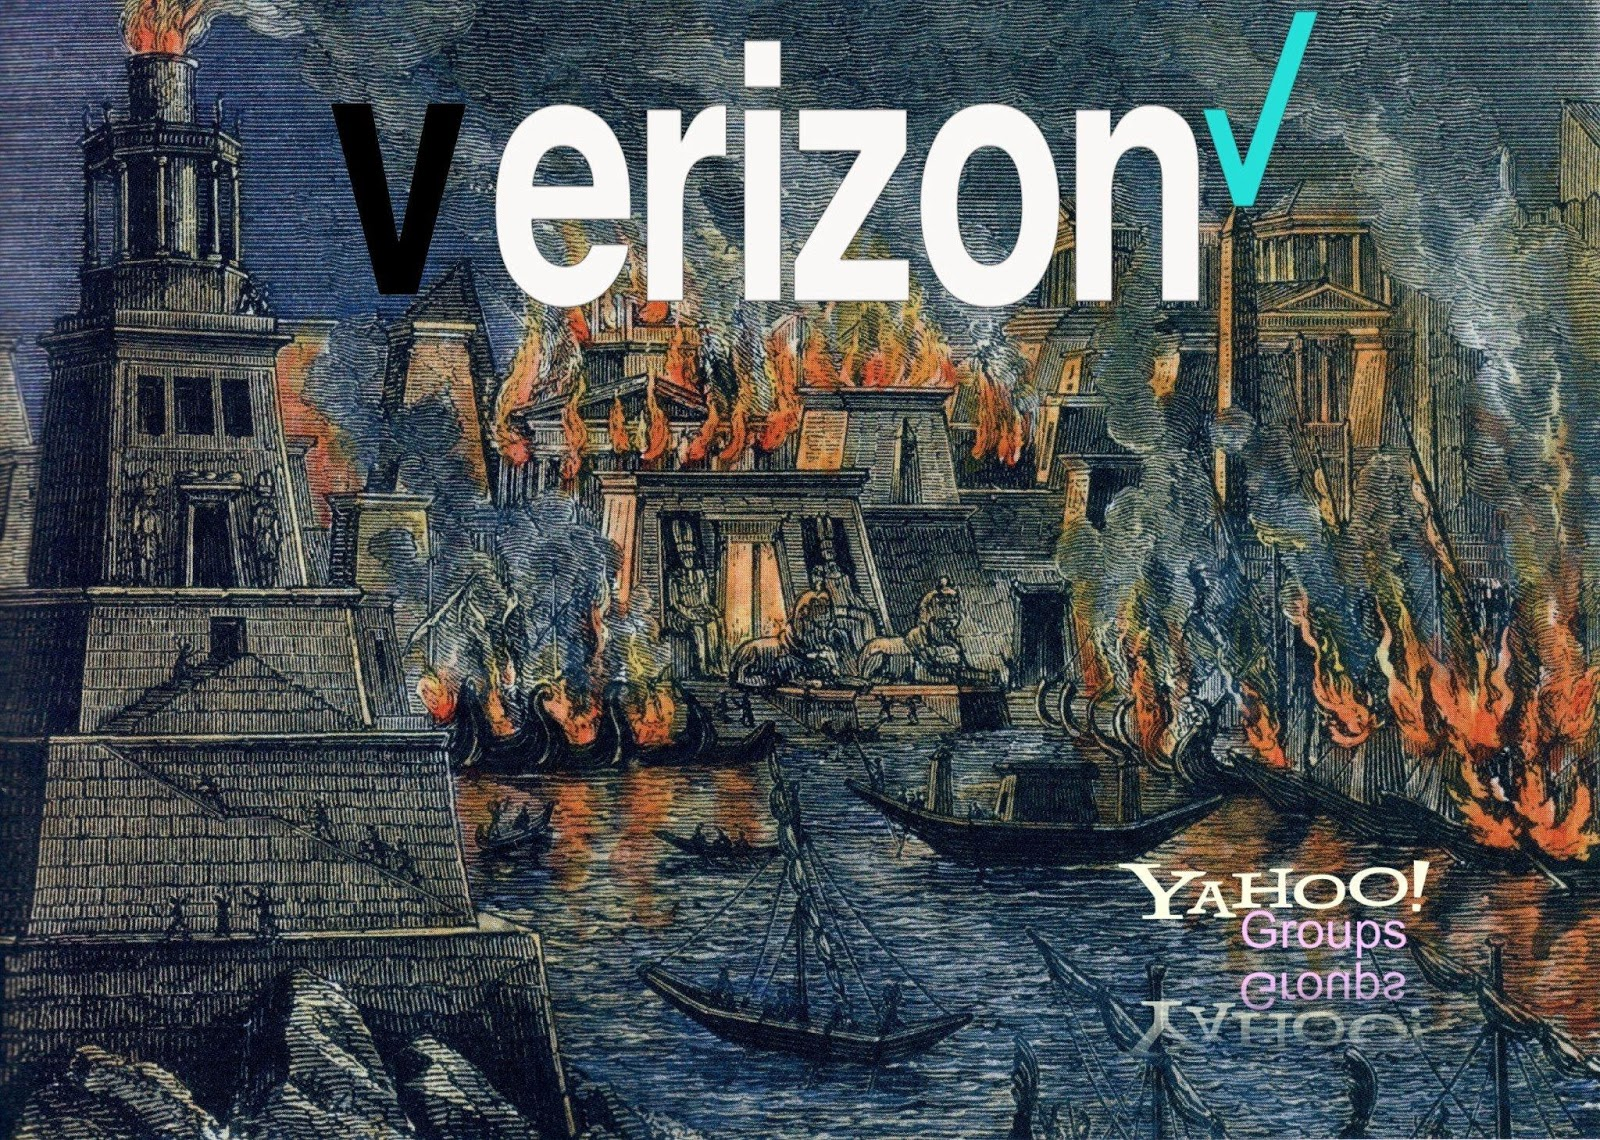 Yahoo-Geddon Project Banner - Colored woodcut of an ancient port, surrounded by burning buildings. Boats in the harbor are safe, but helpless. The logos for Verizon and Yahoo! Groups are superimposed in the top center and lower right corner, respectively.